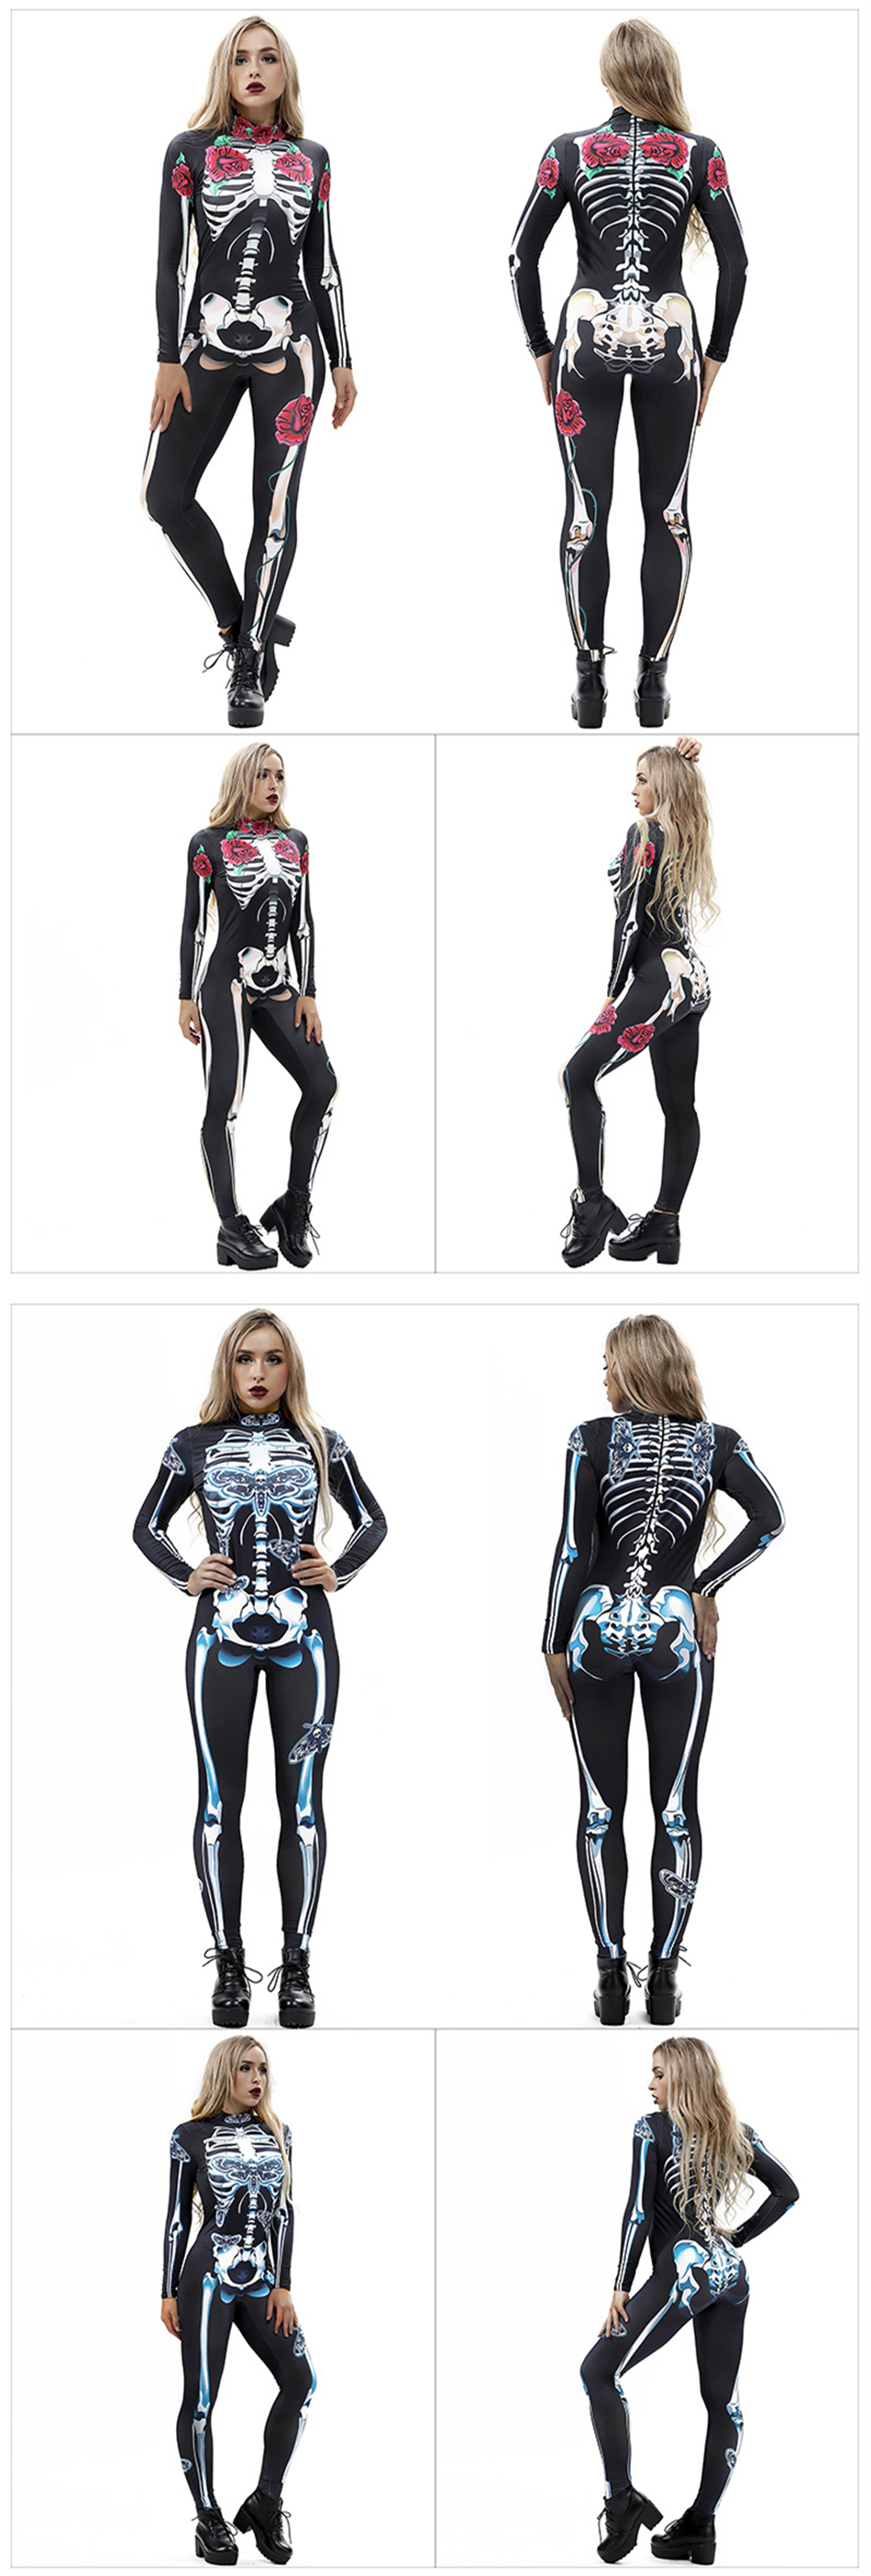 H0c51b9ce0d4644ccb9f5247d9d0e3c6aC - 8Style Halloween Cosplay Costumes for Women Adult Scary Skeleton Bodysuit Print Long Sleeve Carnival Party Ghost Skull Dress